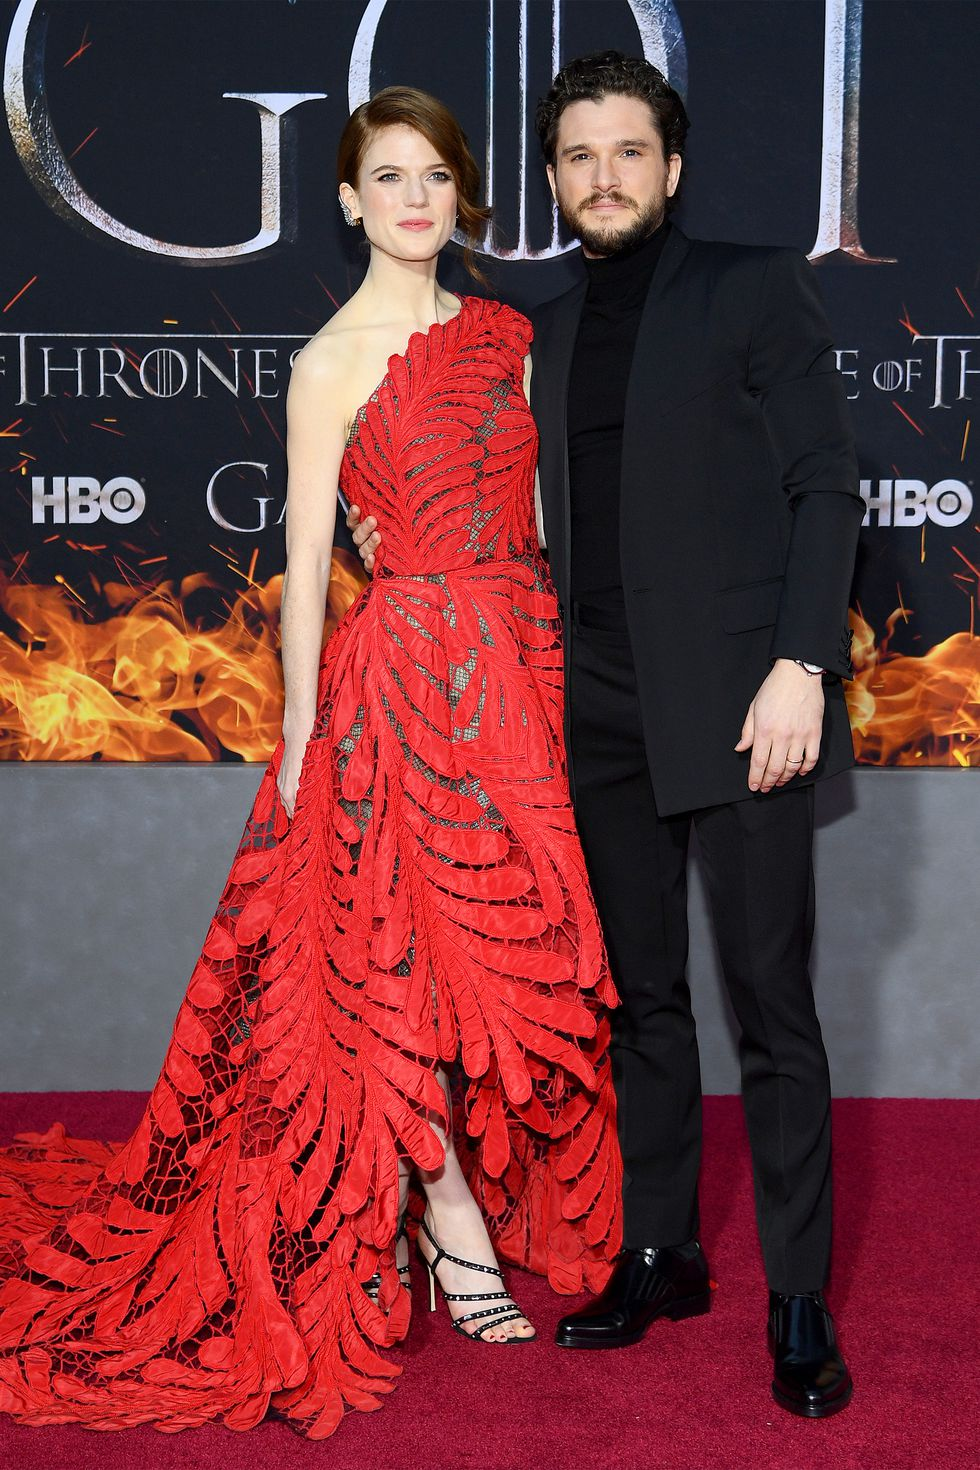 hbz-got-premiere-rose-leslie-and-kit-harington1-1554334448.jpg